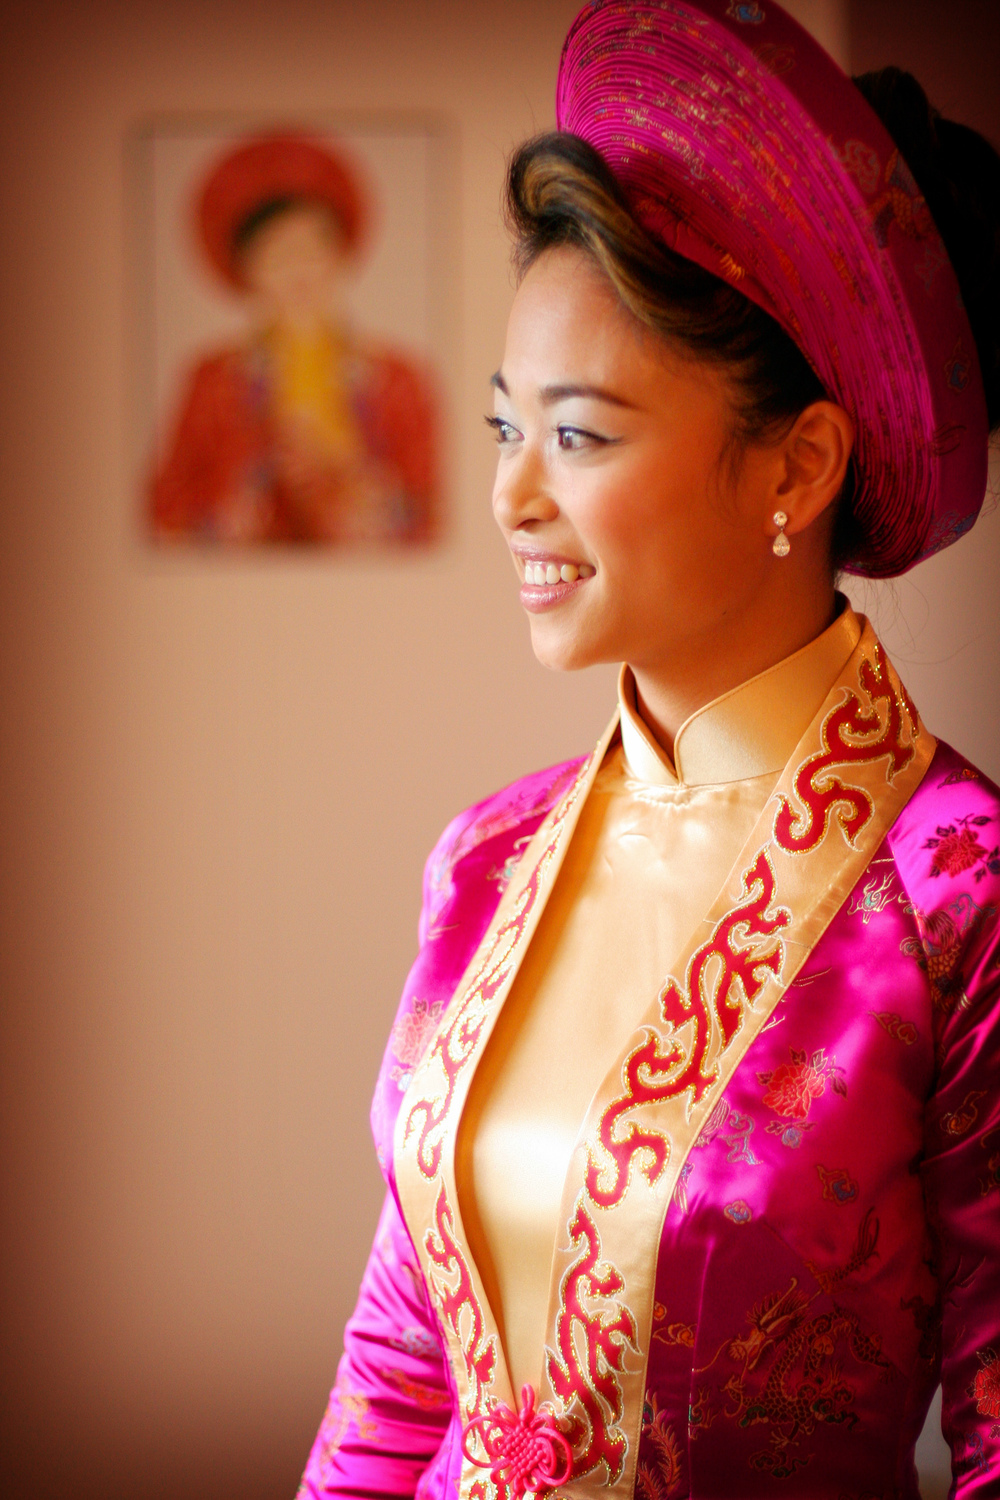 Vietnamese_Wedding_Denver_008.JPG